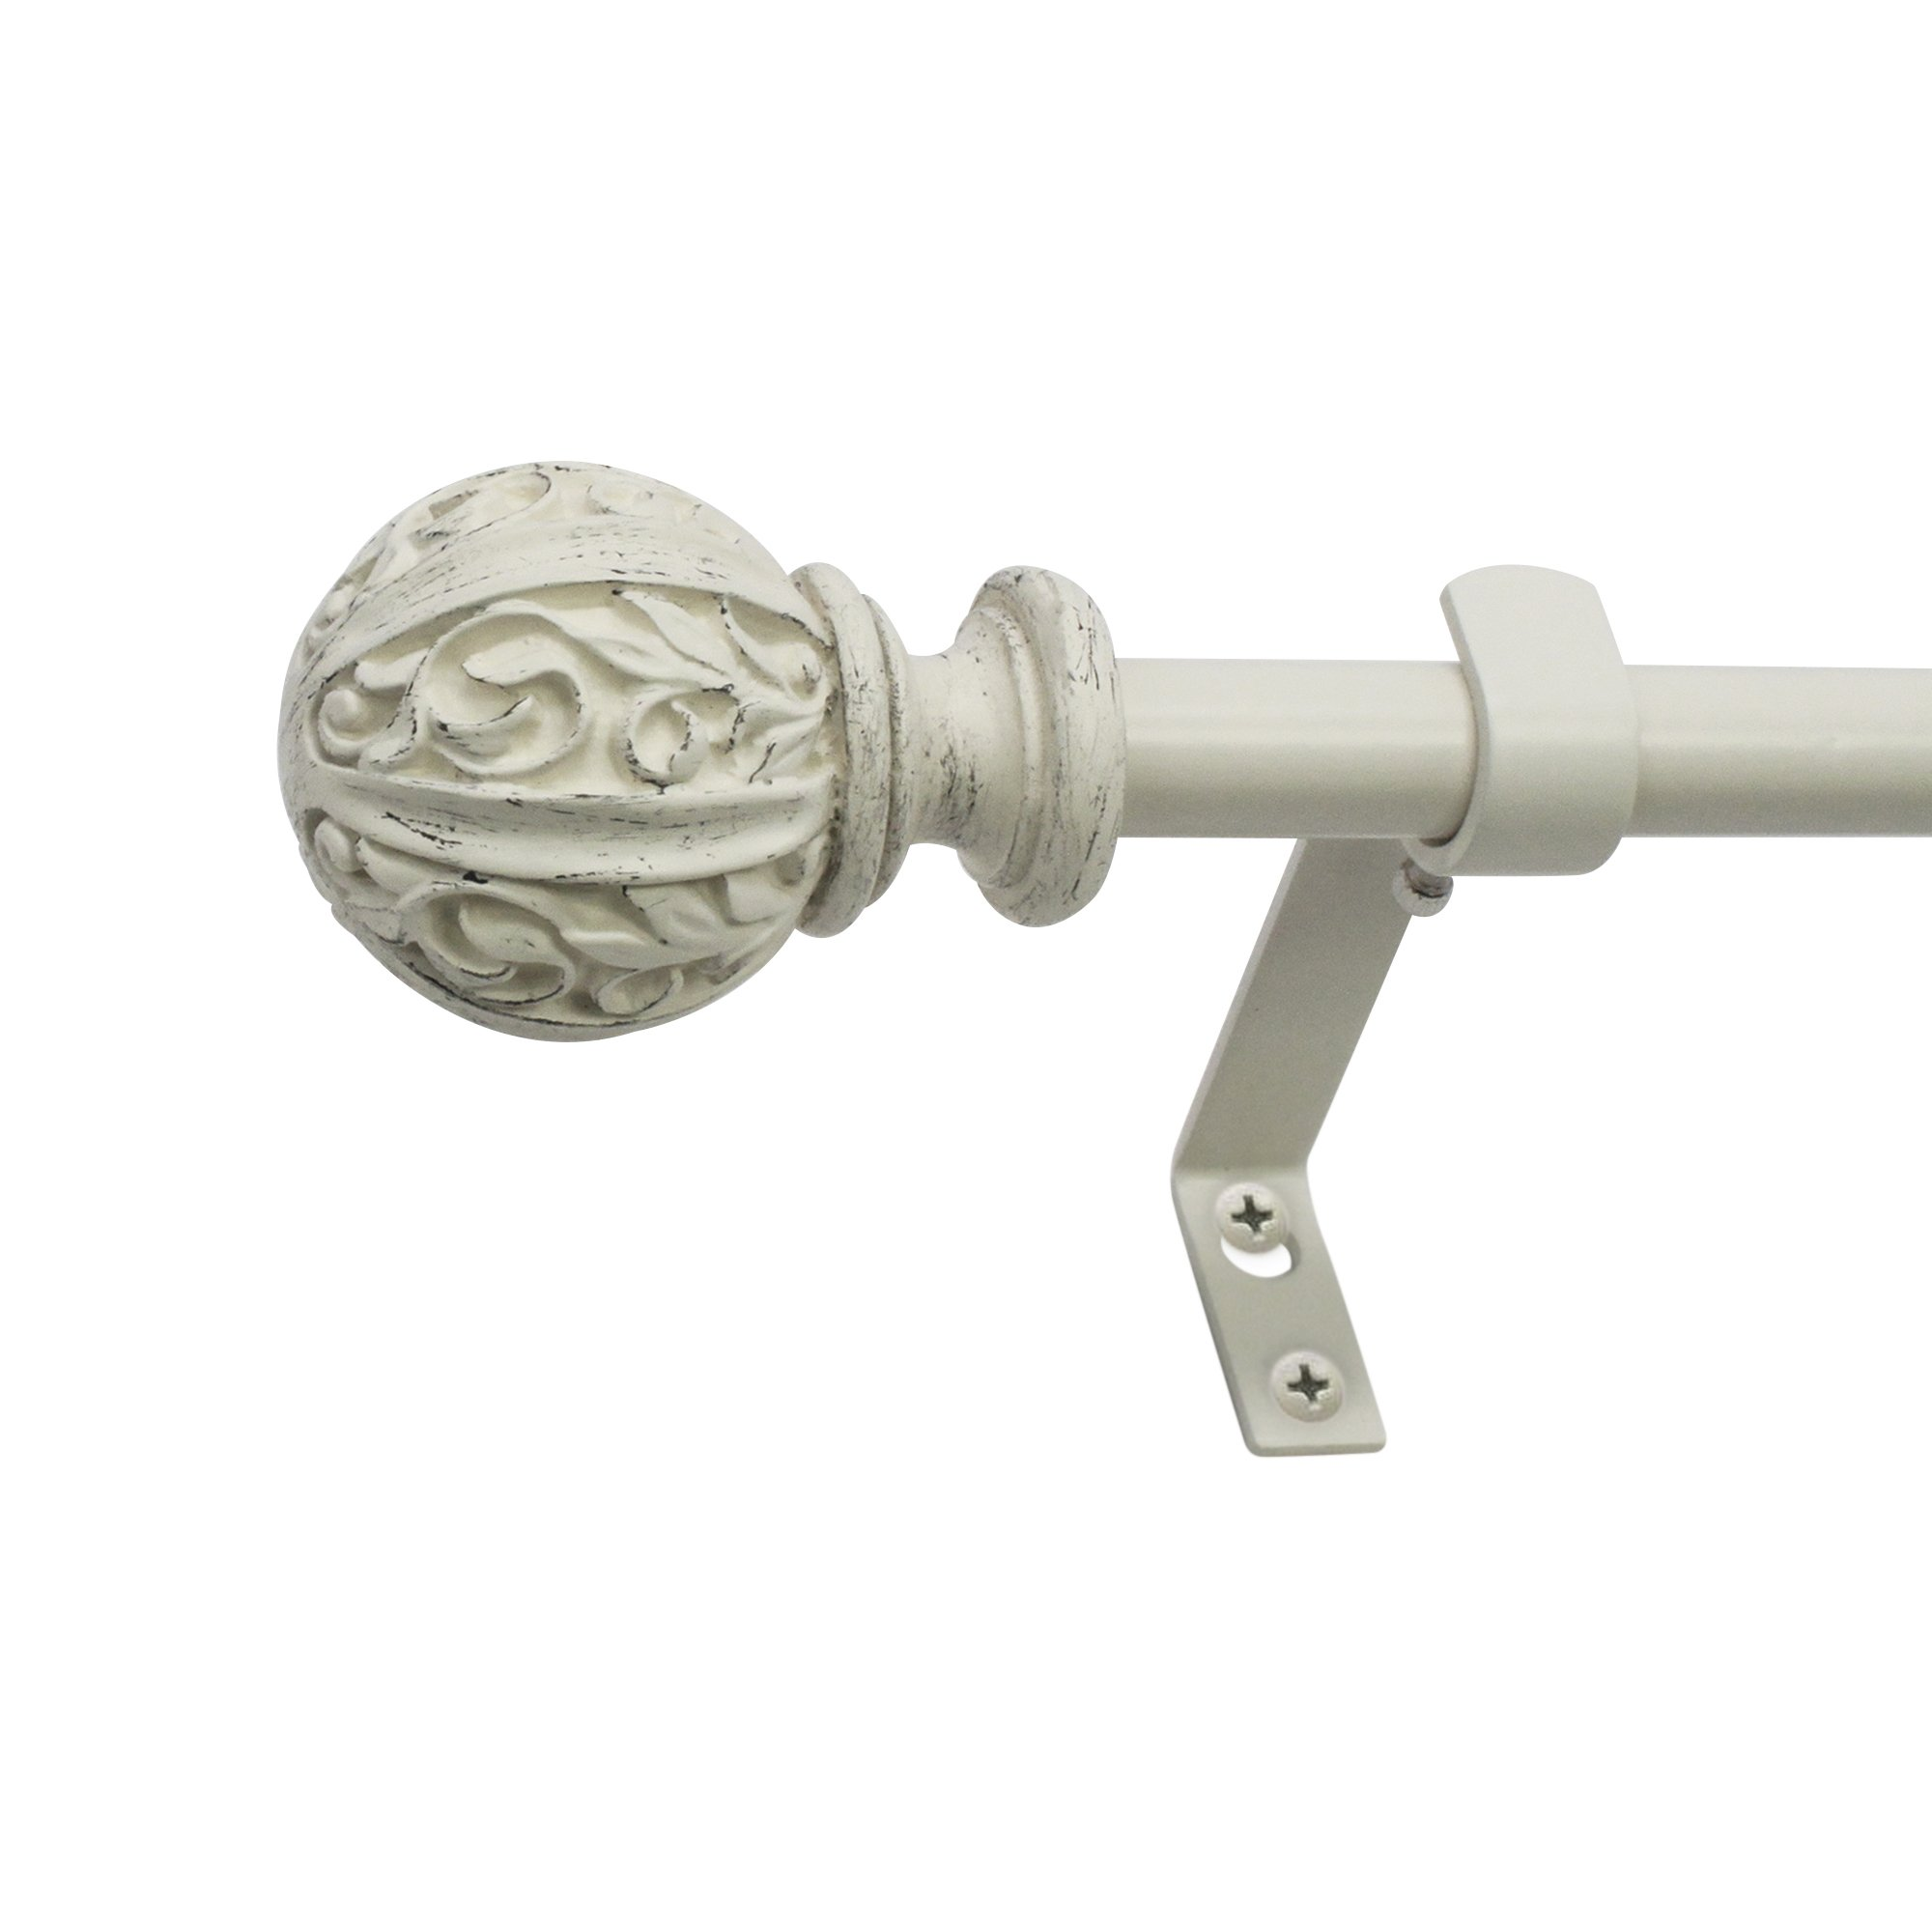 Montevilla Leaf Ball Curtain Rod, Distressed White, 26-48''